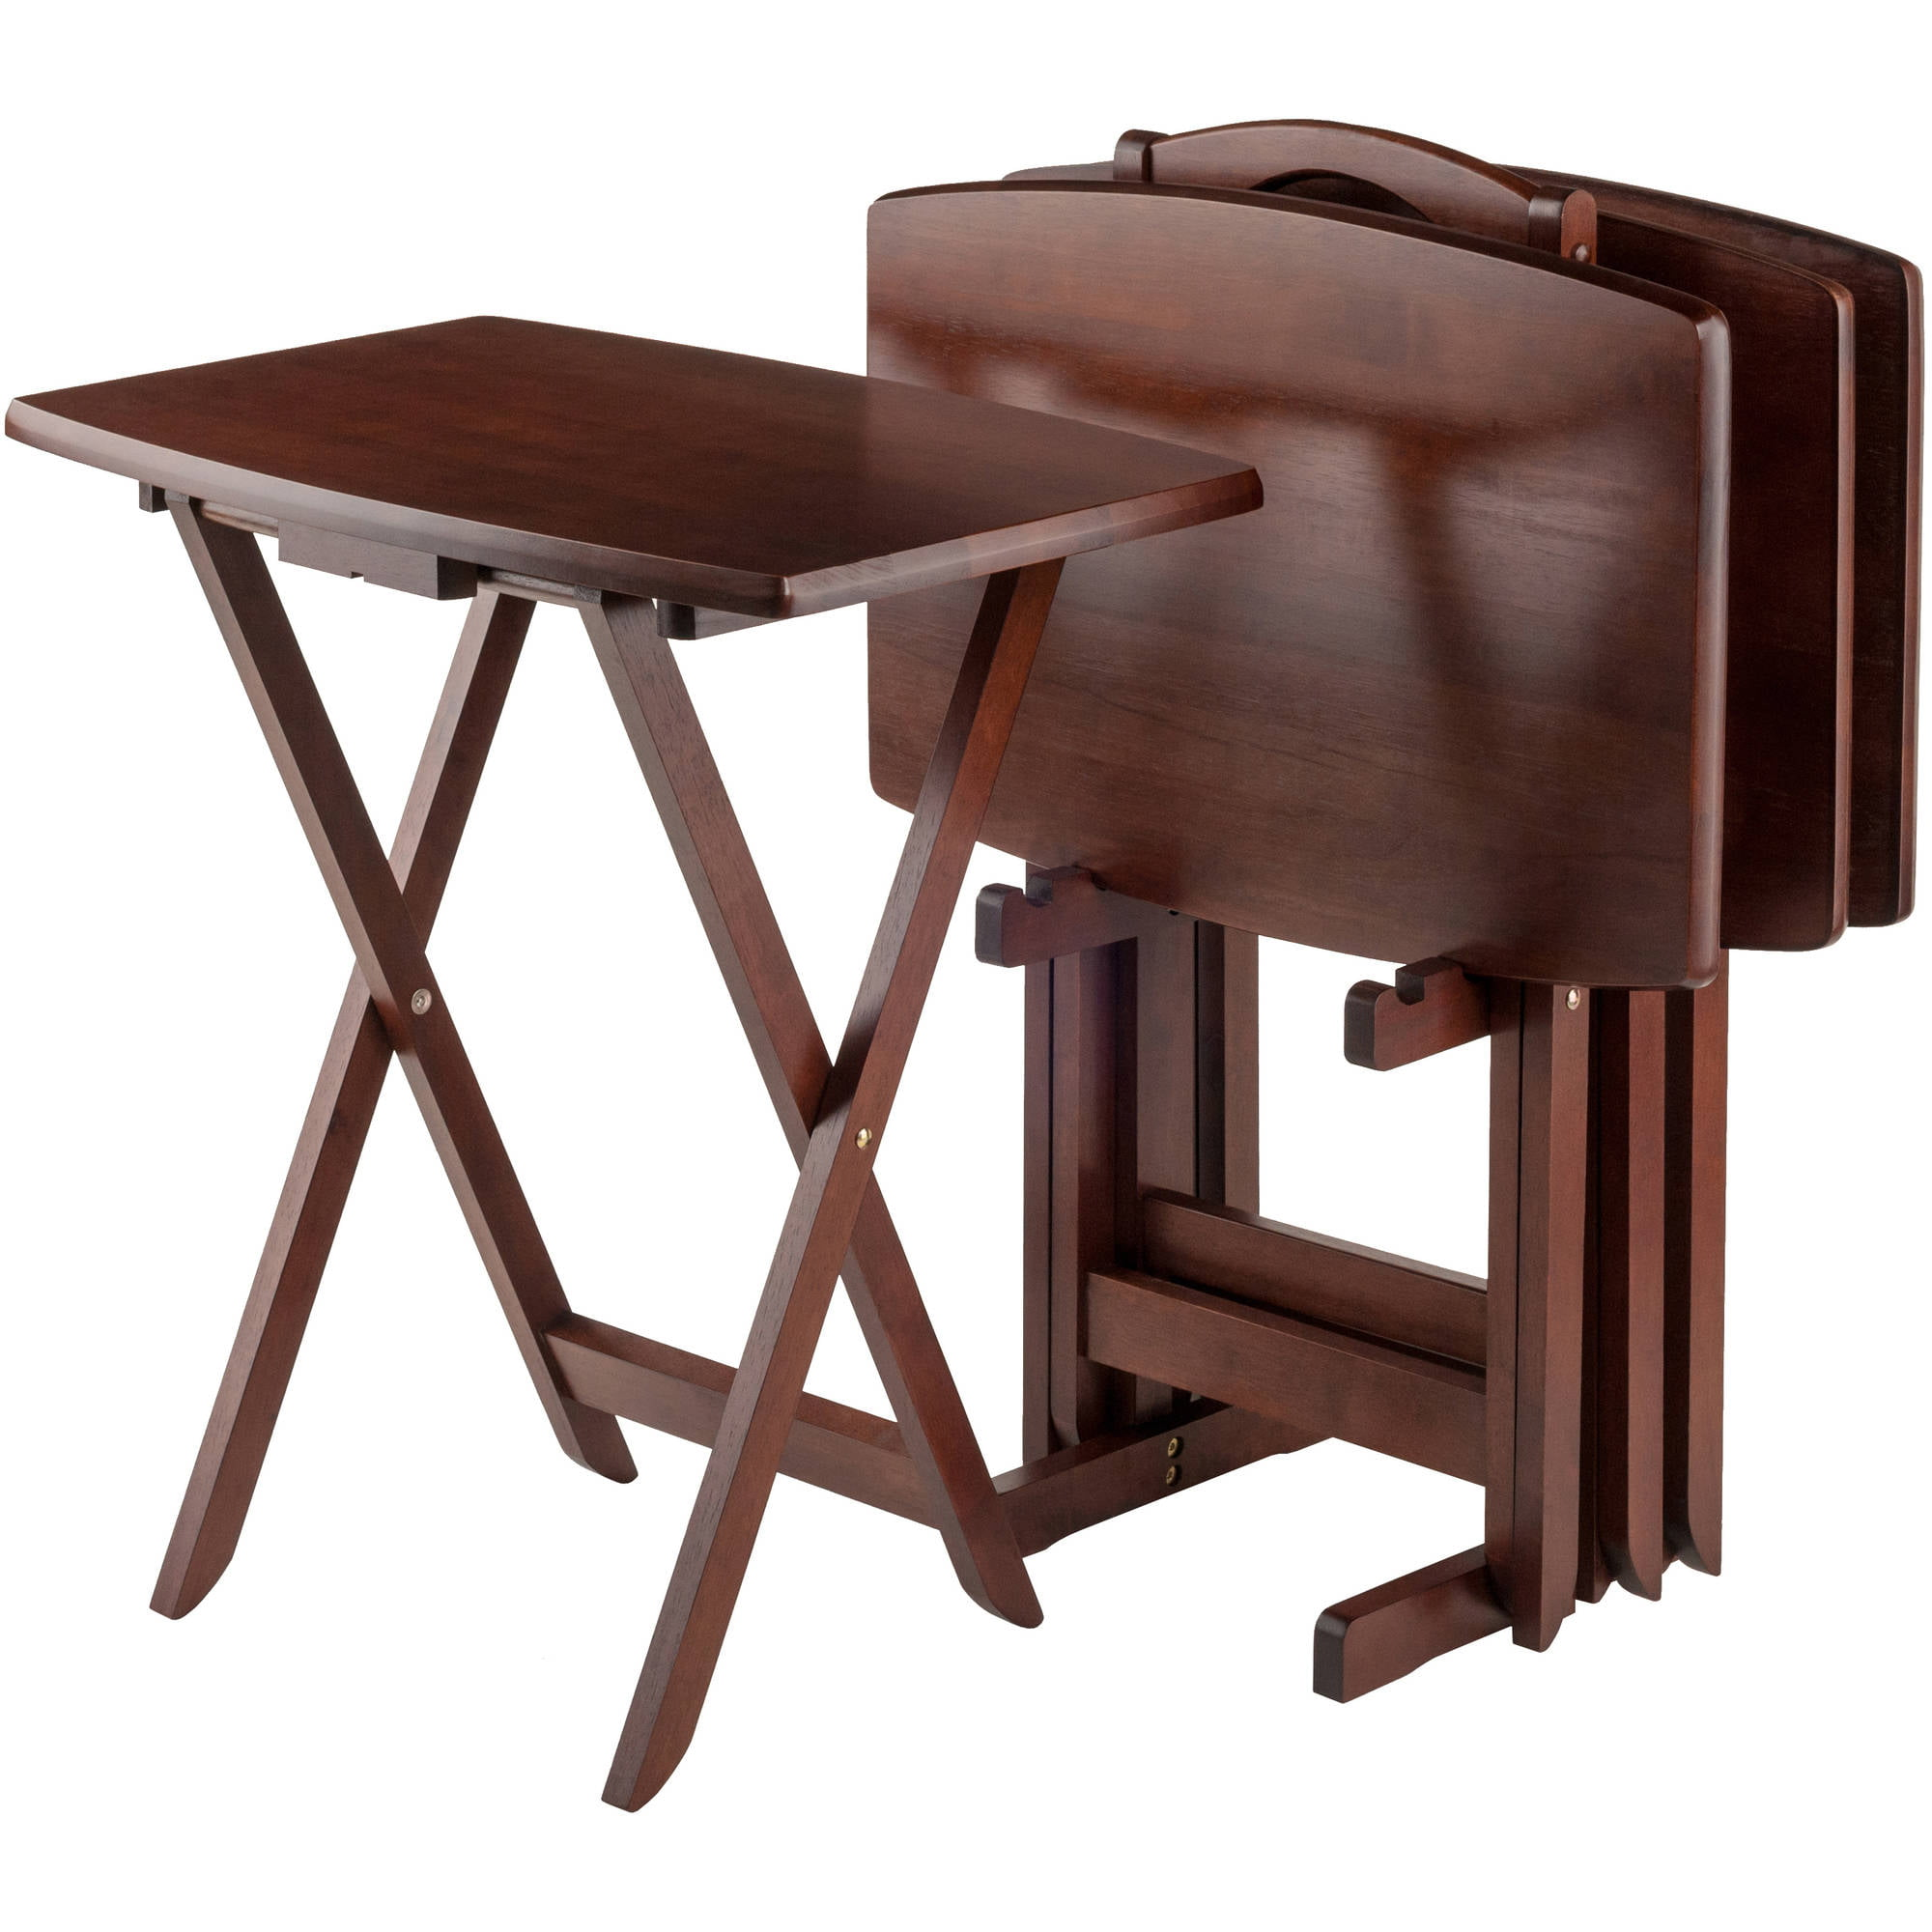 sc 1 st  Walmart.com & Linon Gray Acacia Tray Table Set 4 Tray Tables plus Stand - Walmart.com